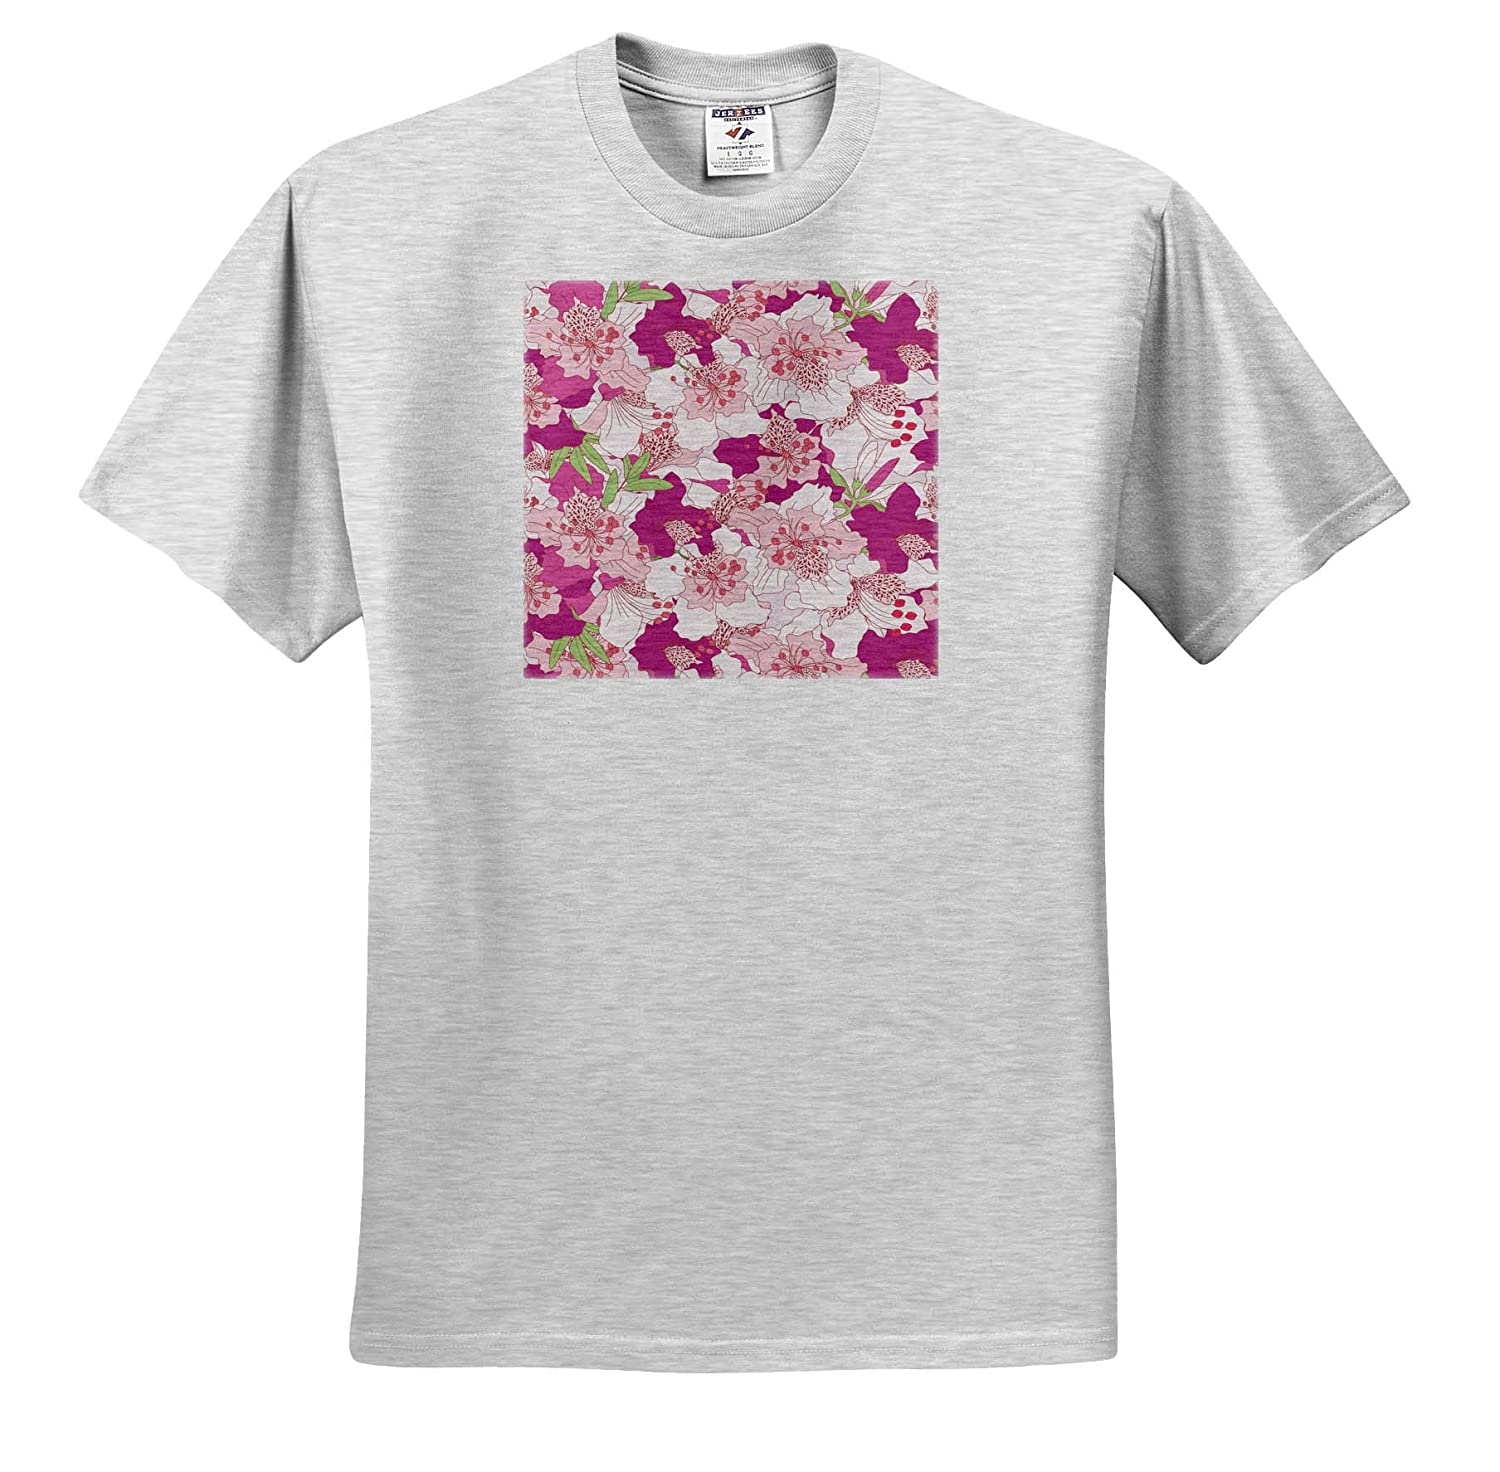 T-Shirts 3dRose Sven Herkenrath Nature Rhododendron Flower in Pattern Style with Many Flowers